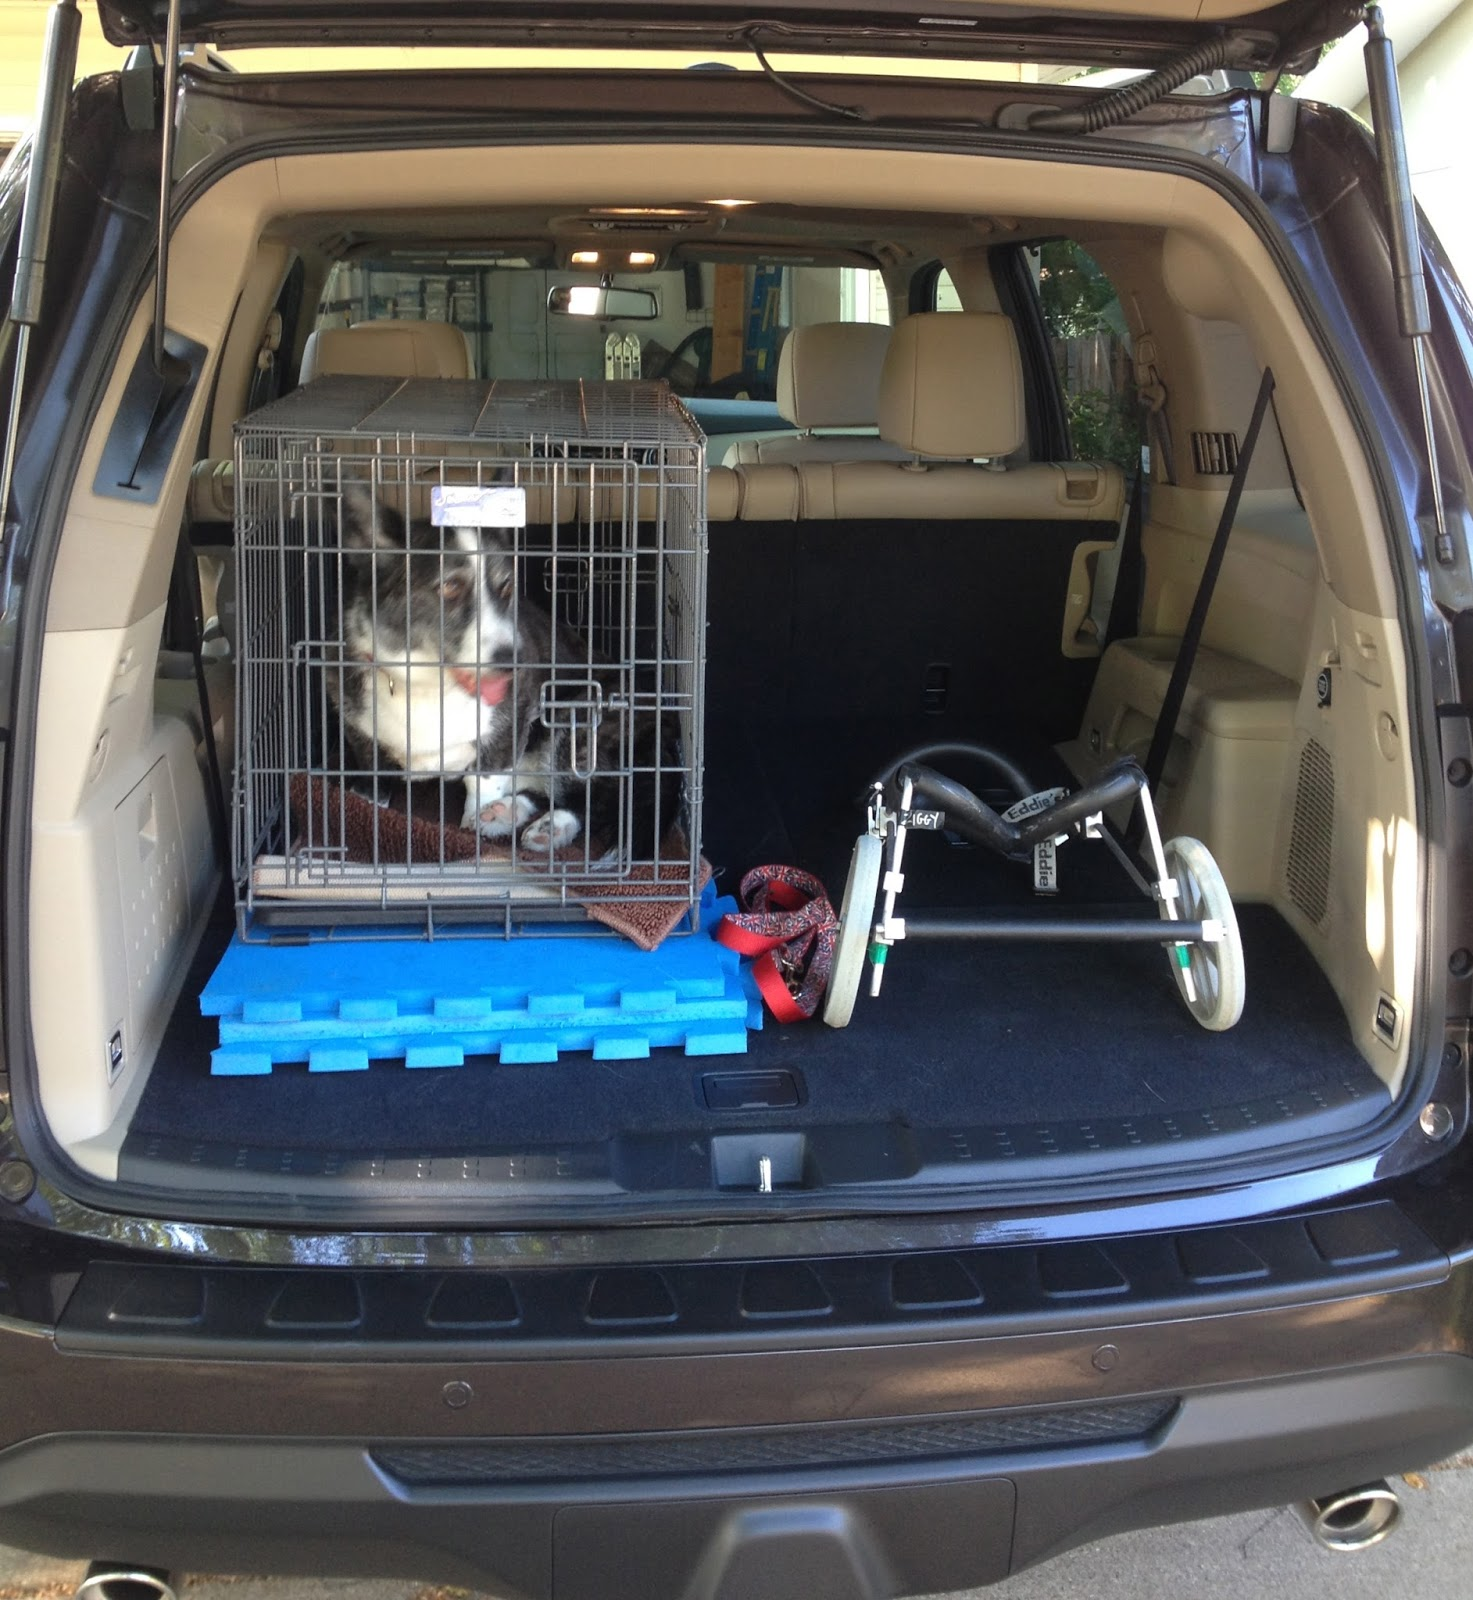 Honda Pilot Gas Mileage >> wags n woofs: New Wheels for Me (or Dog Crates in a Honda ...